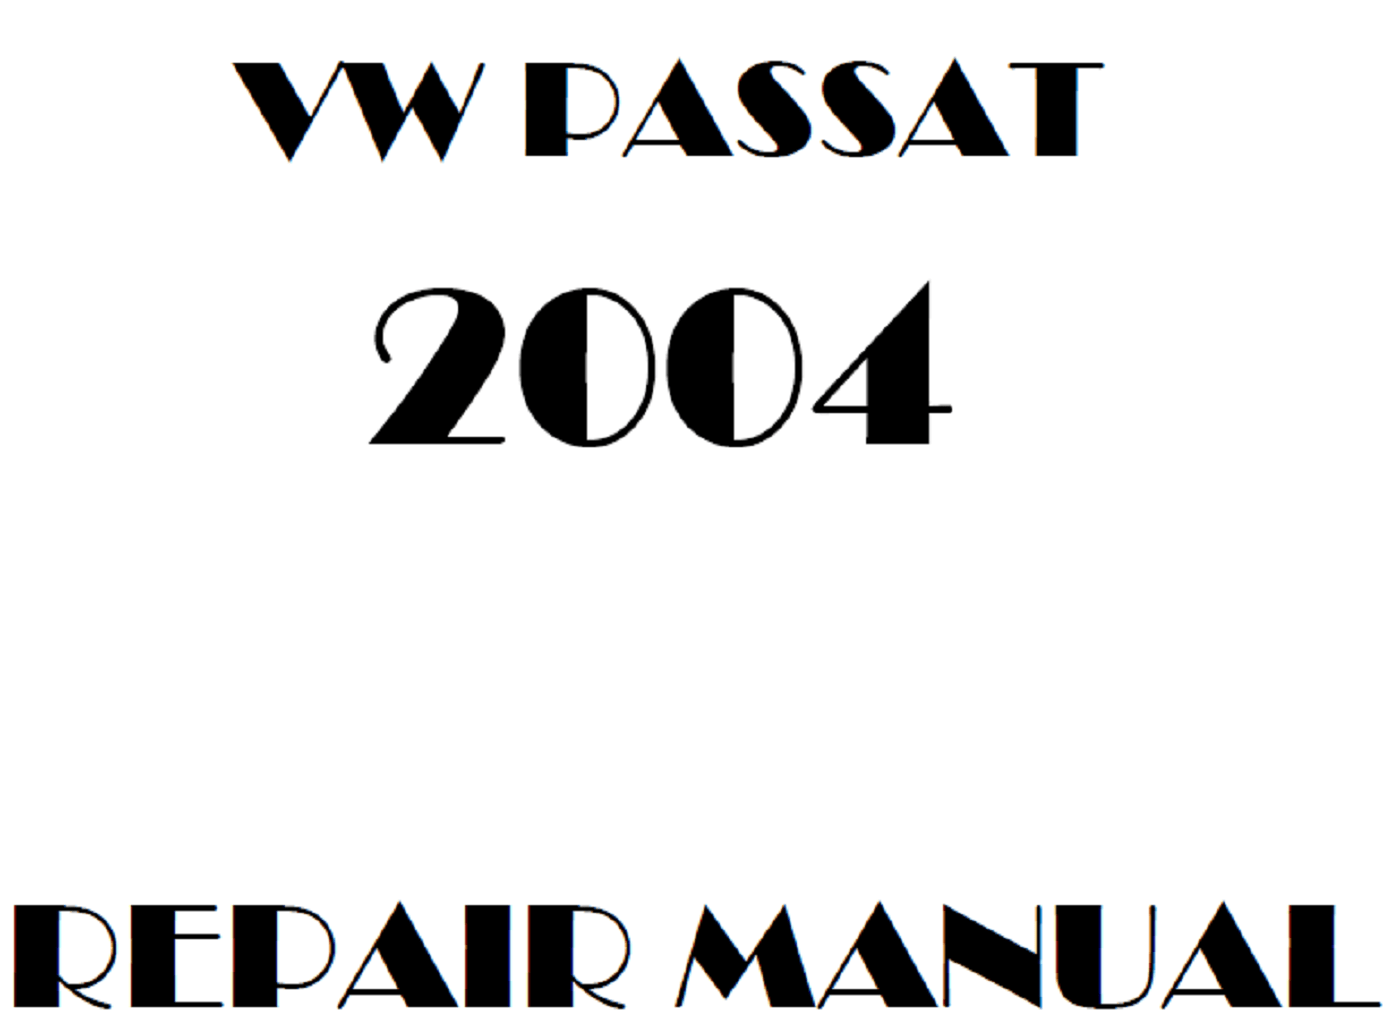 2004 Volkswagen Passat repair manual